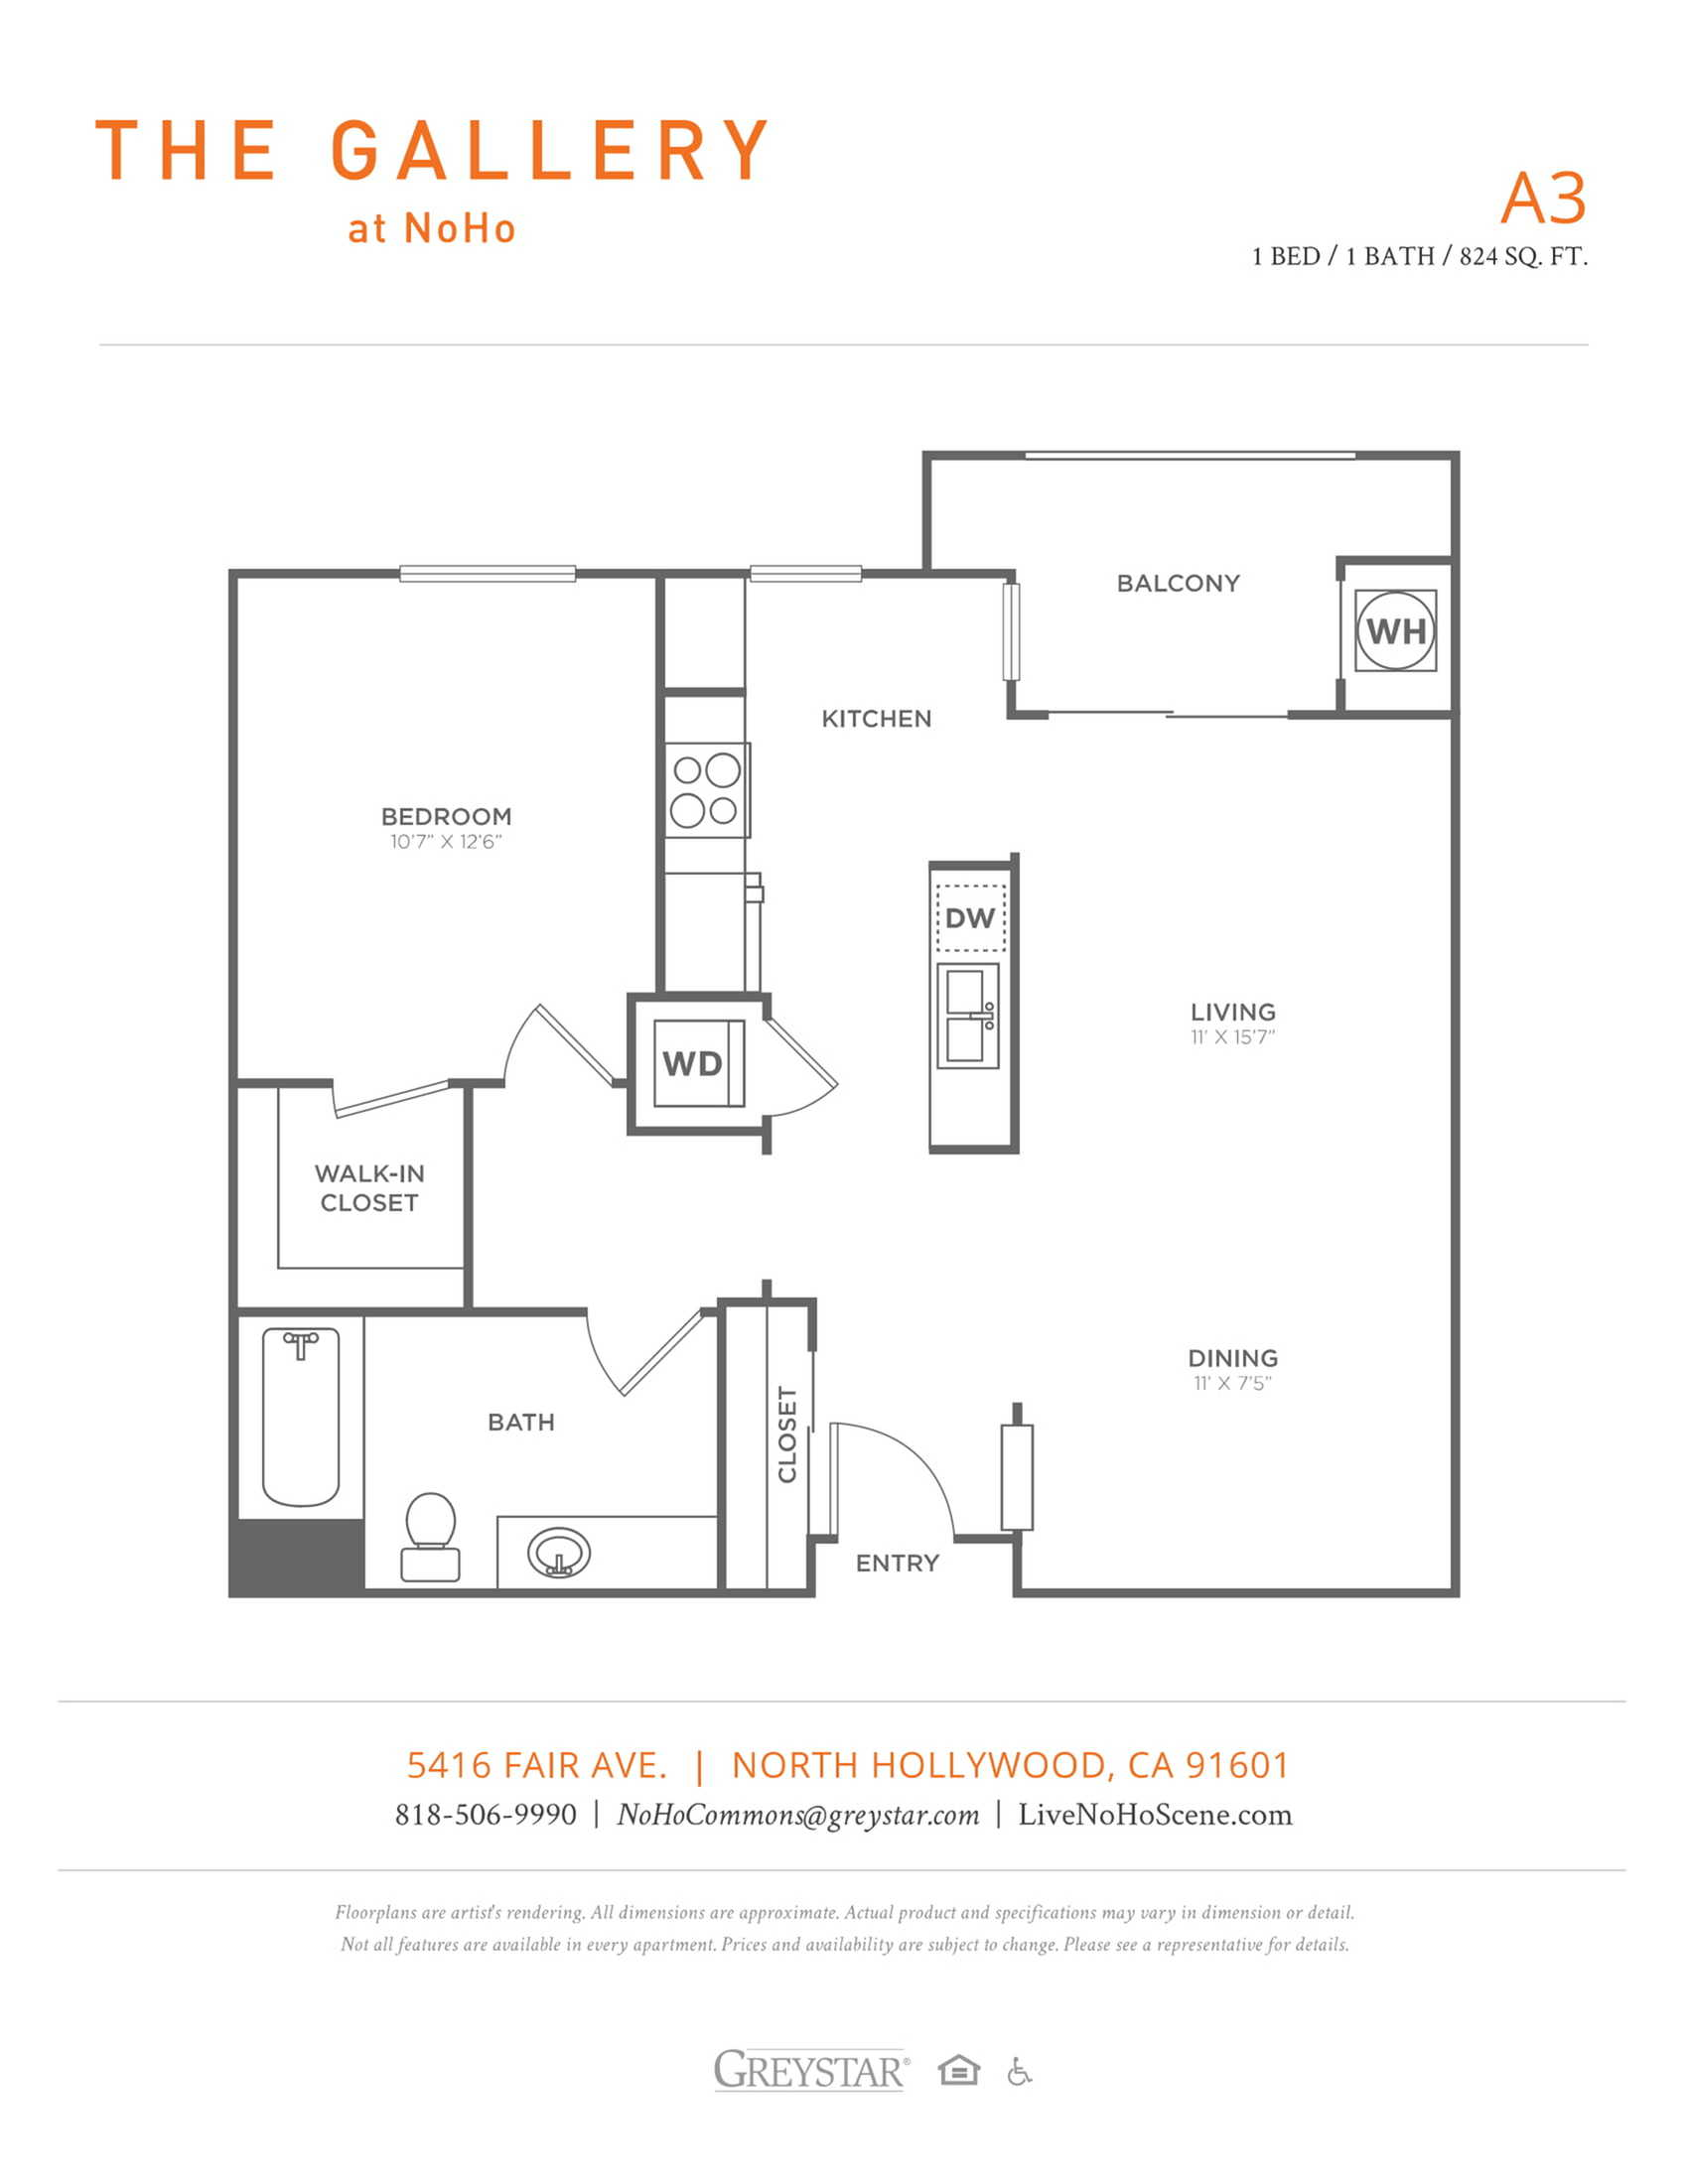 A3 | 1 bed 1 bath | from 824 square feet